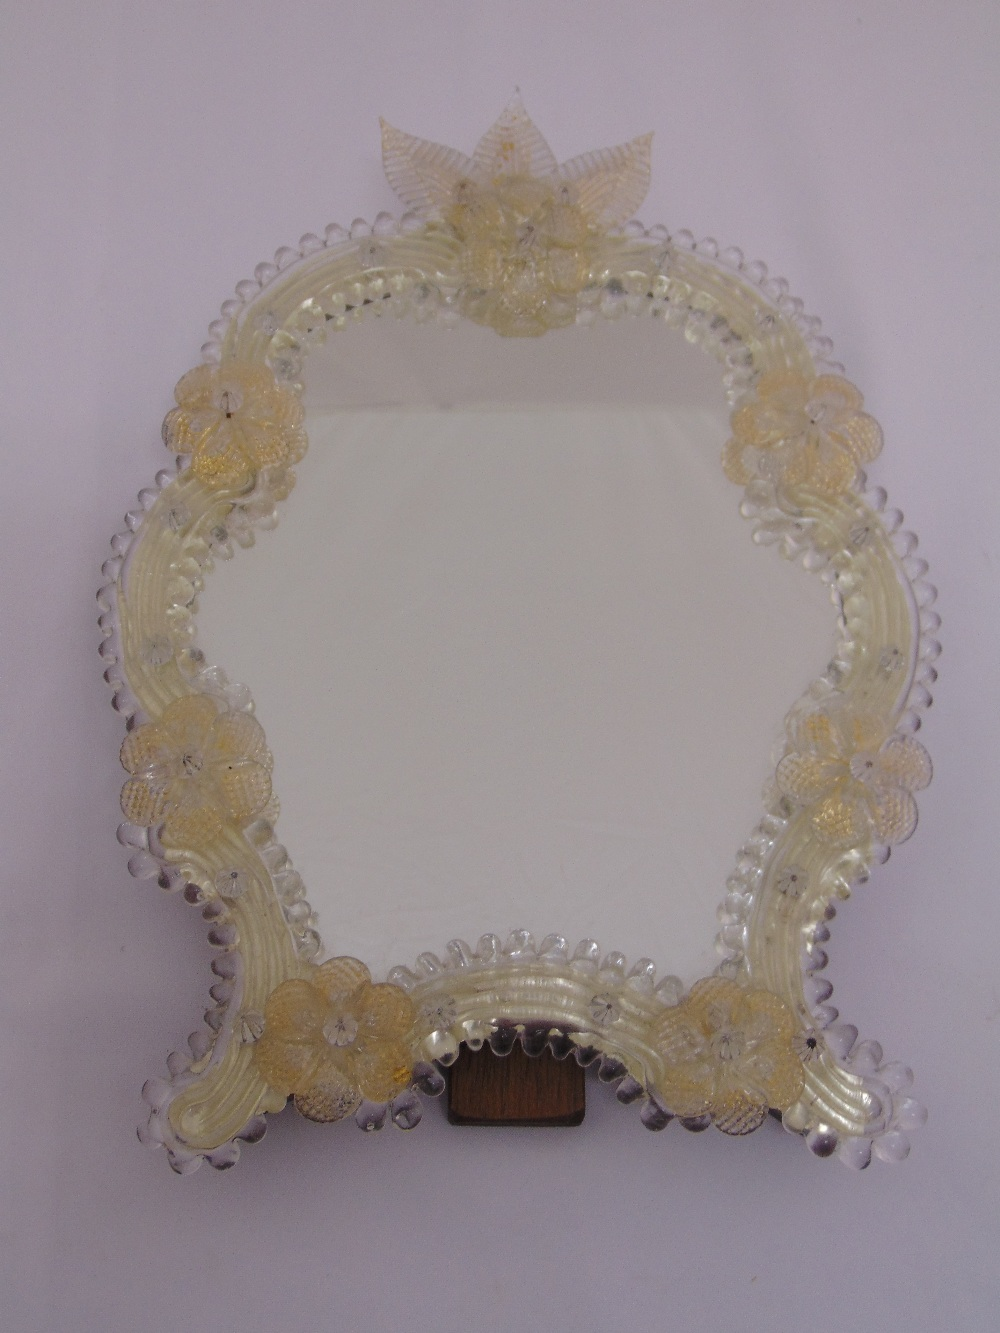 Lot 26 - A Venetian shaped glass decorative table mirror with hinged back strut, 40cm (h)